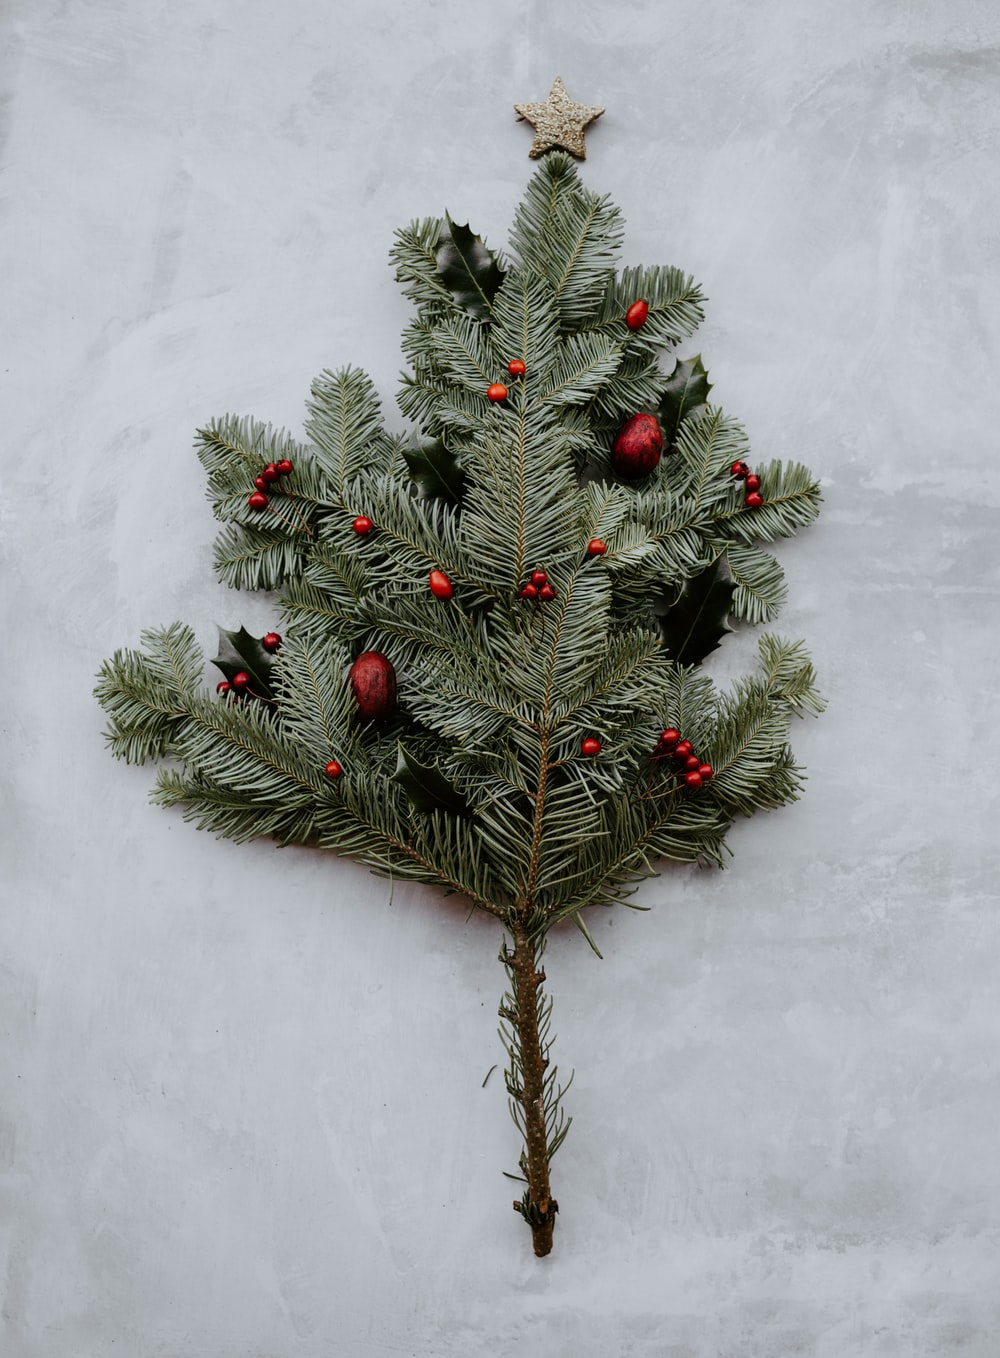 green pine leaves on gray surface